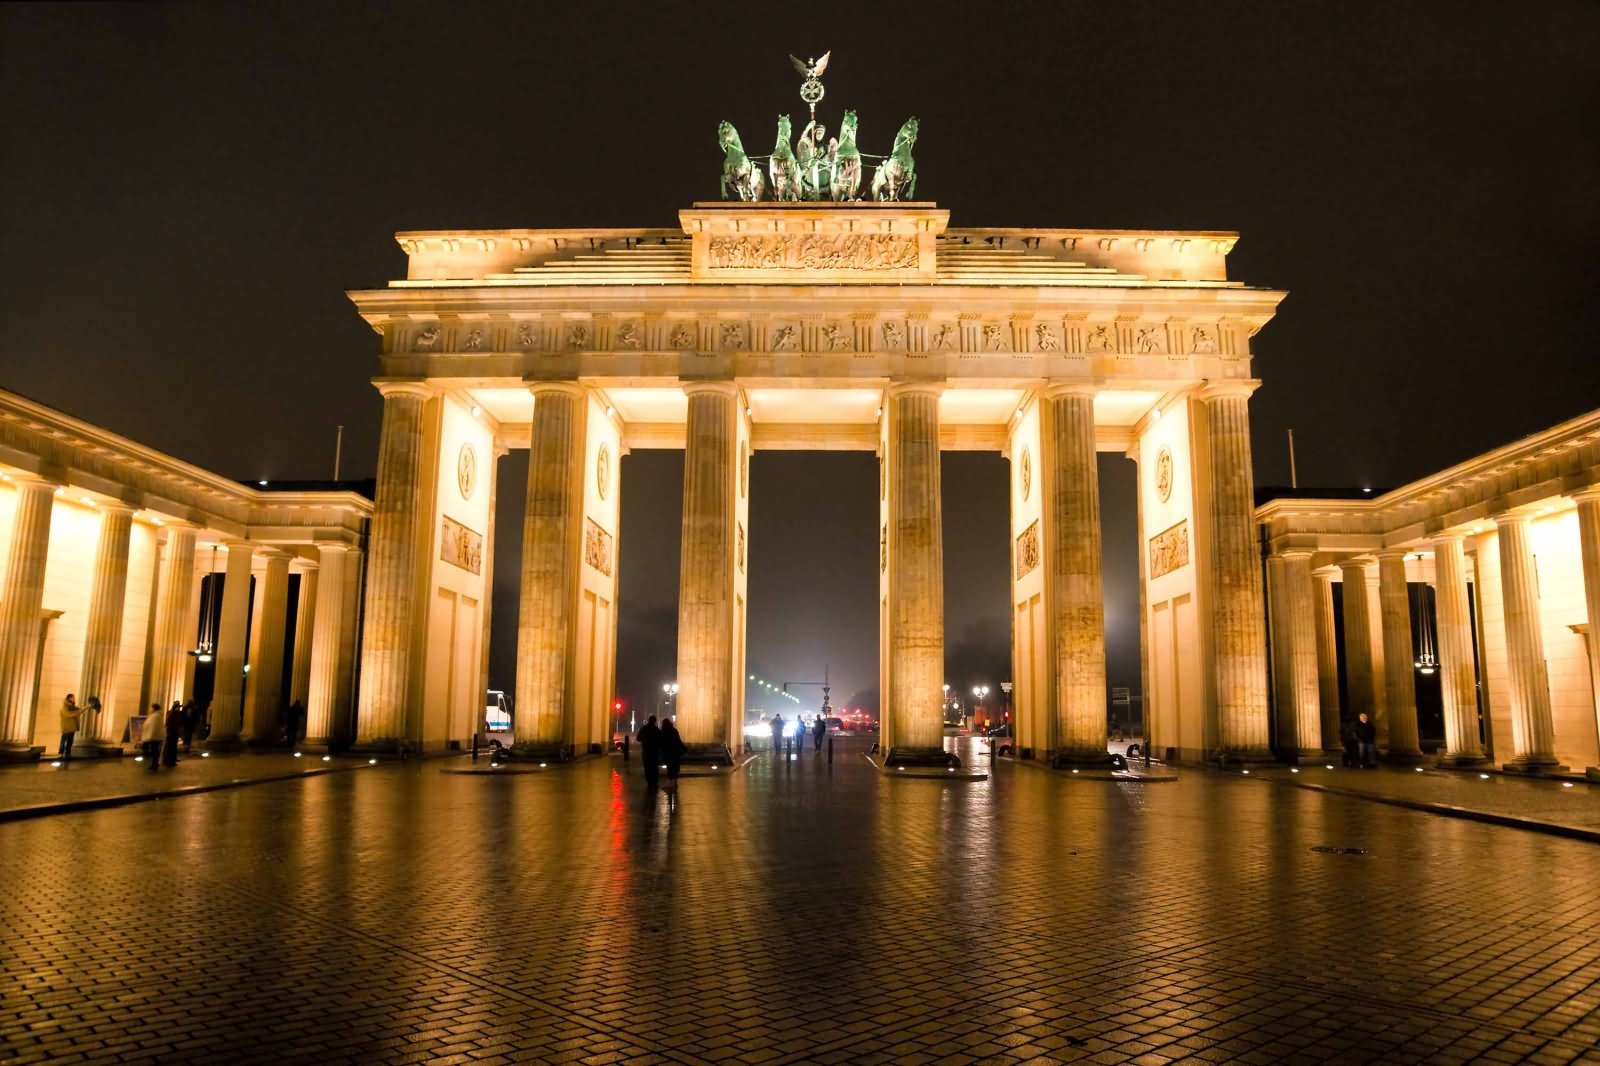 brandenburg gate at night - photo #37